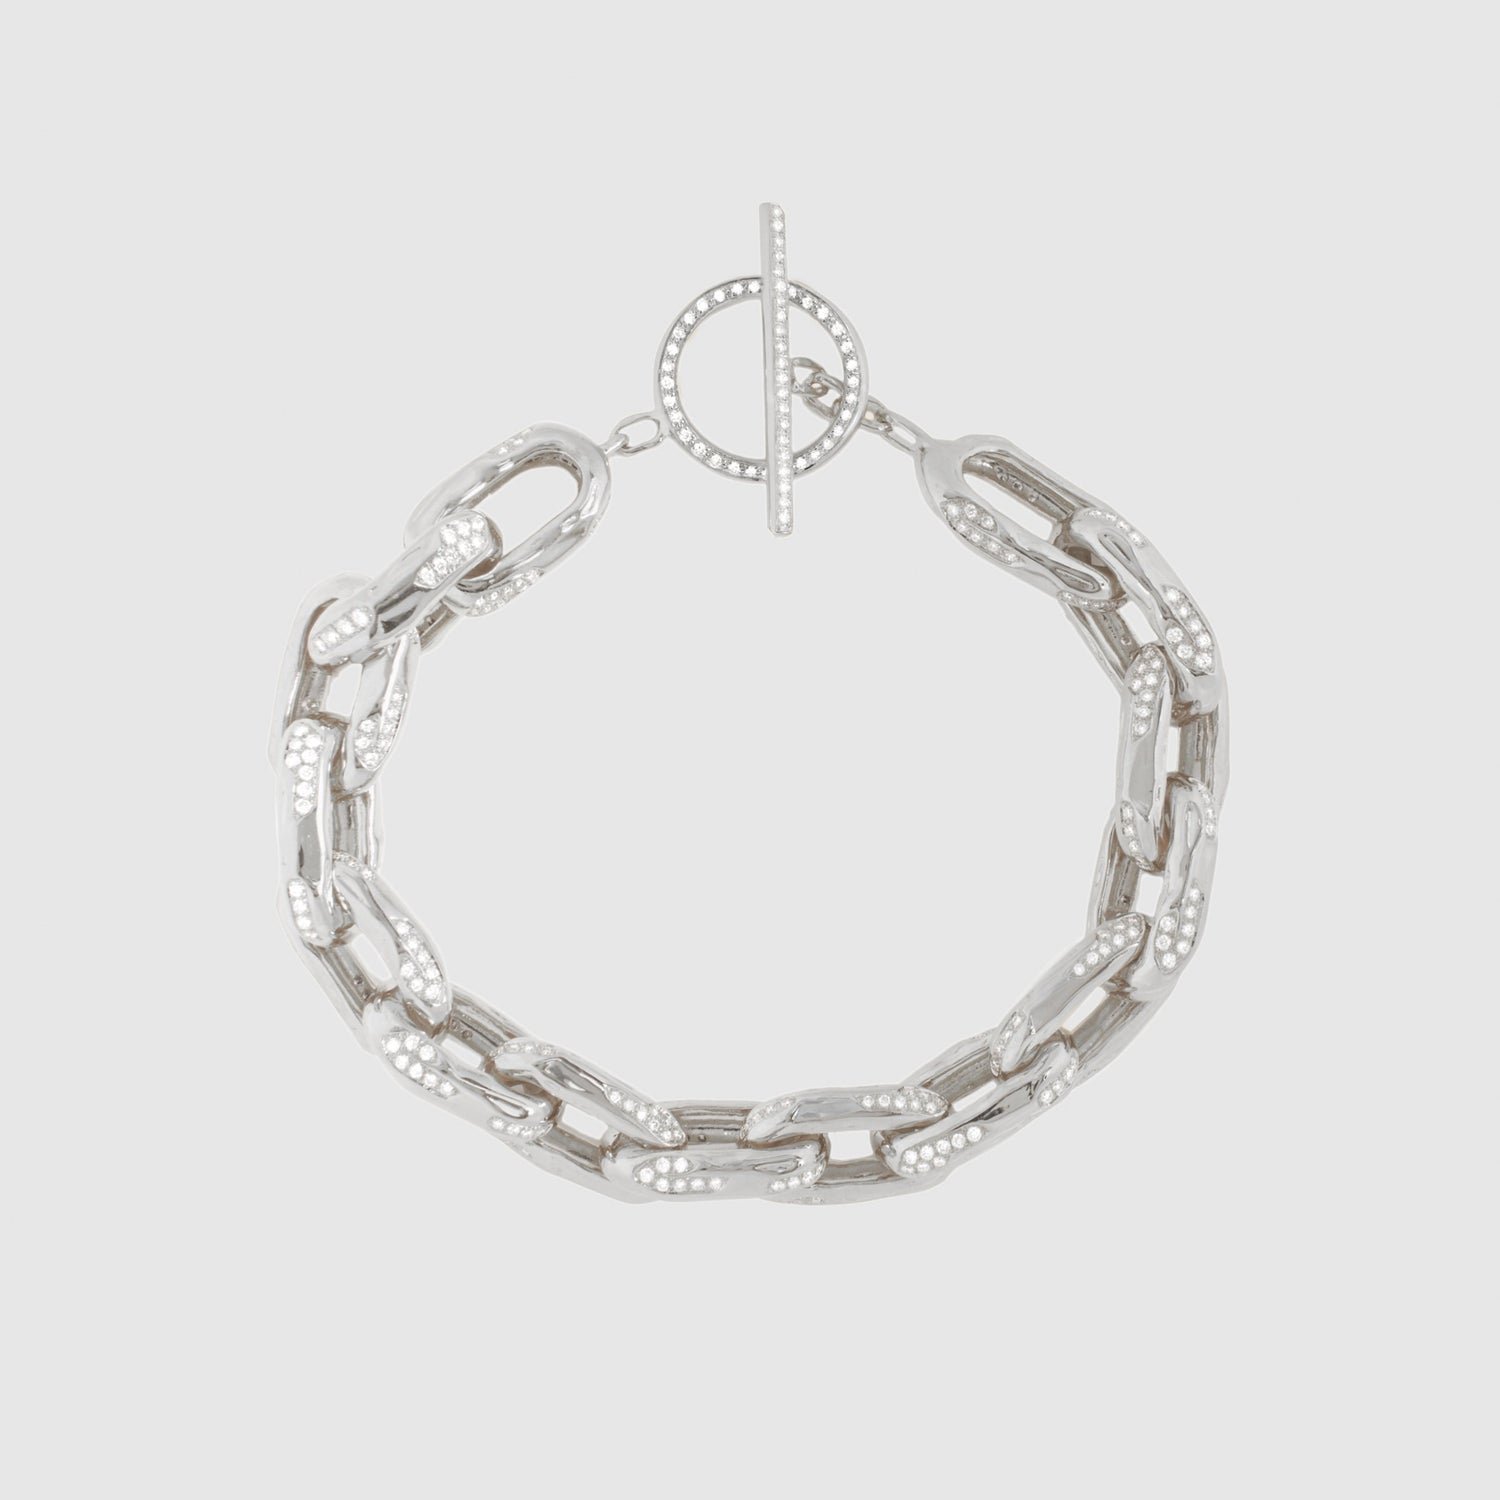 Diamond Row 10 Bracelet